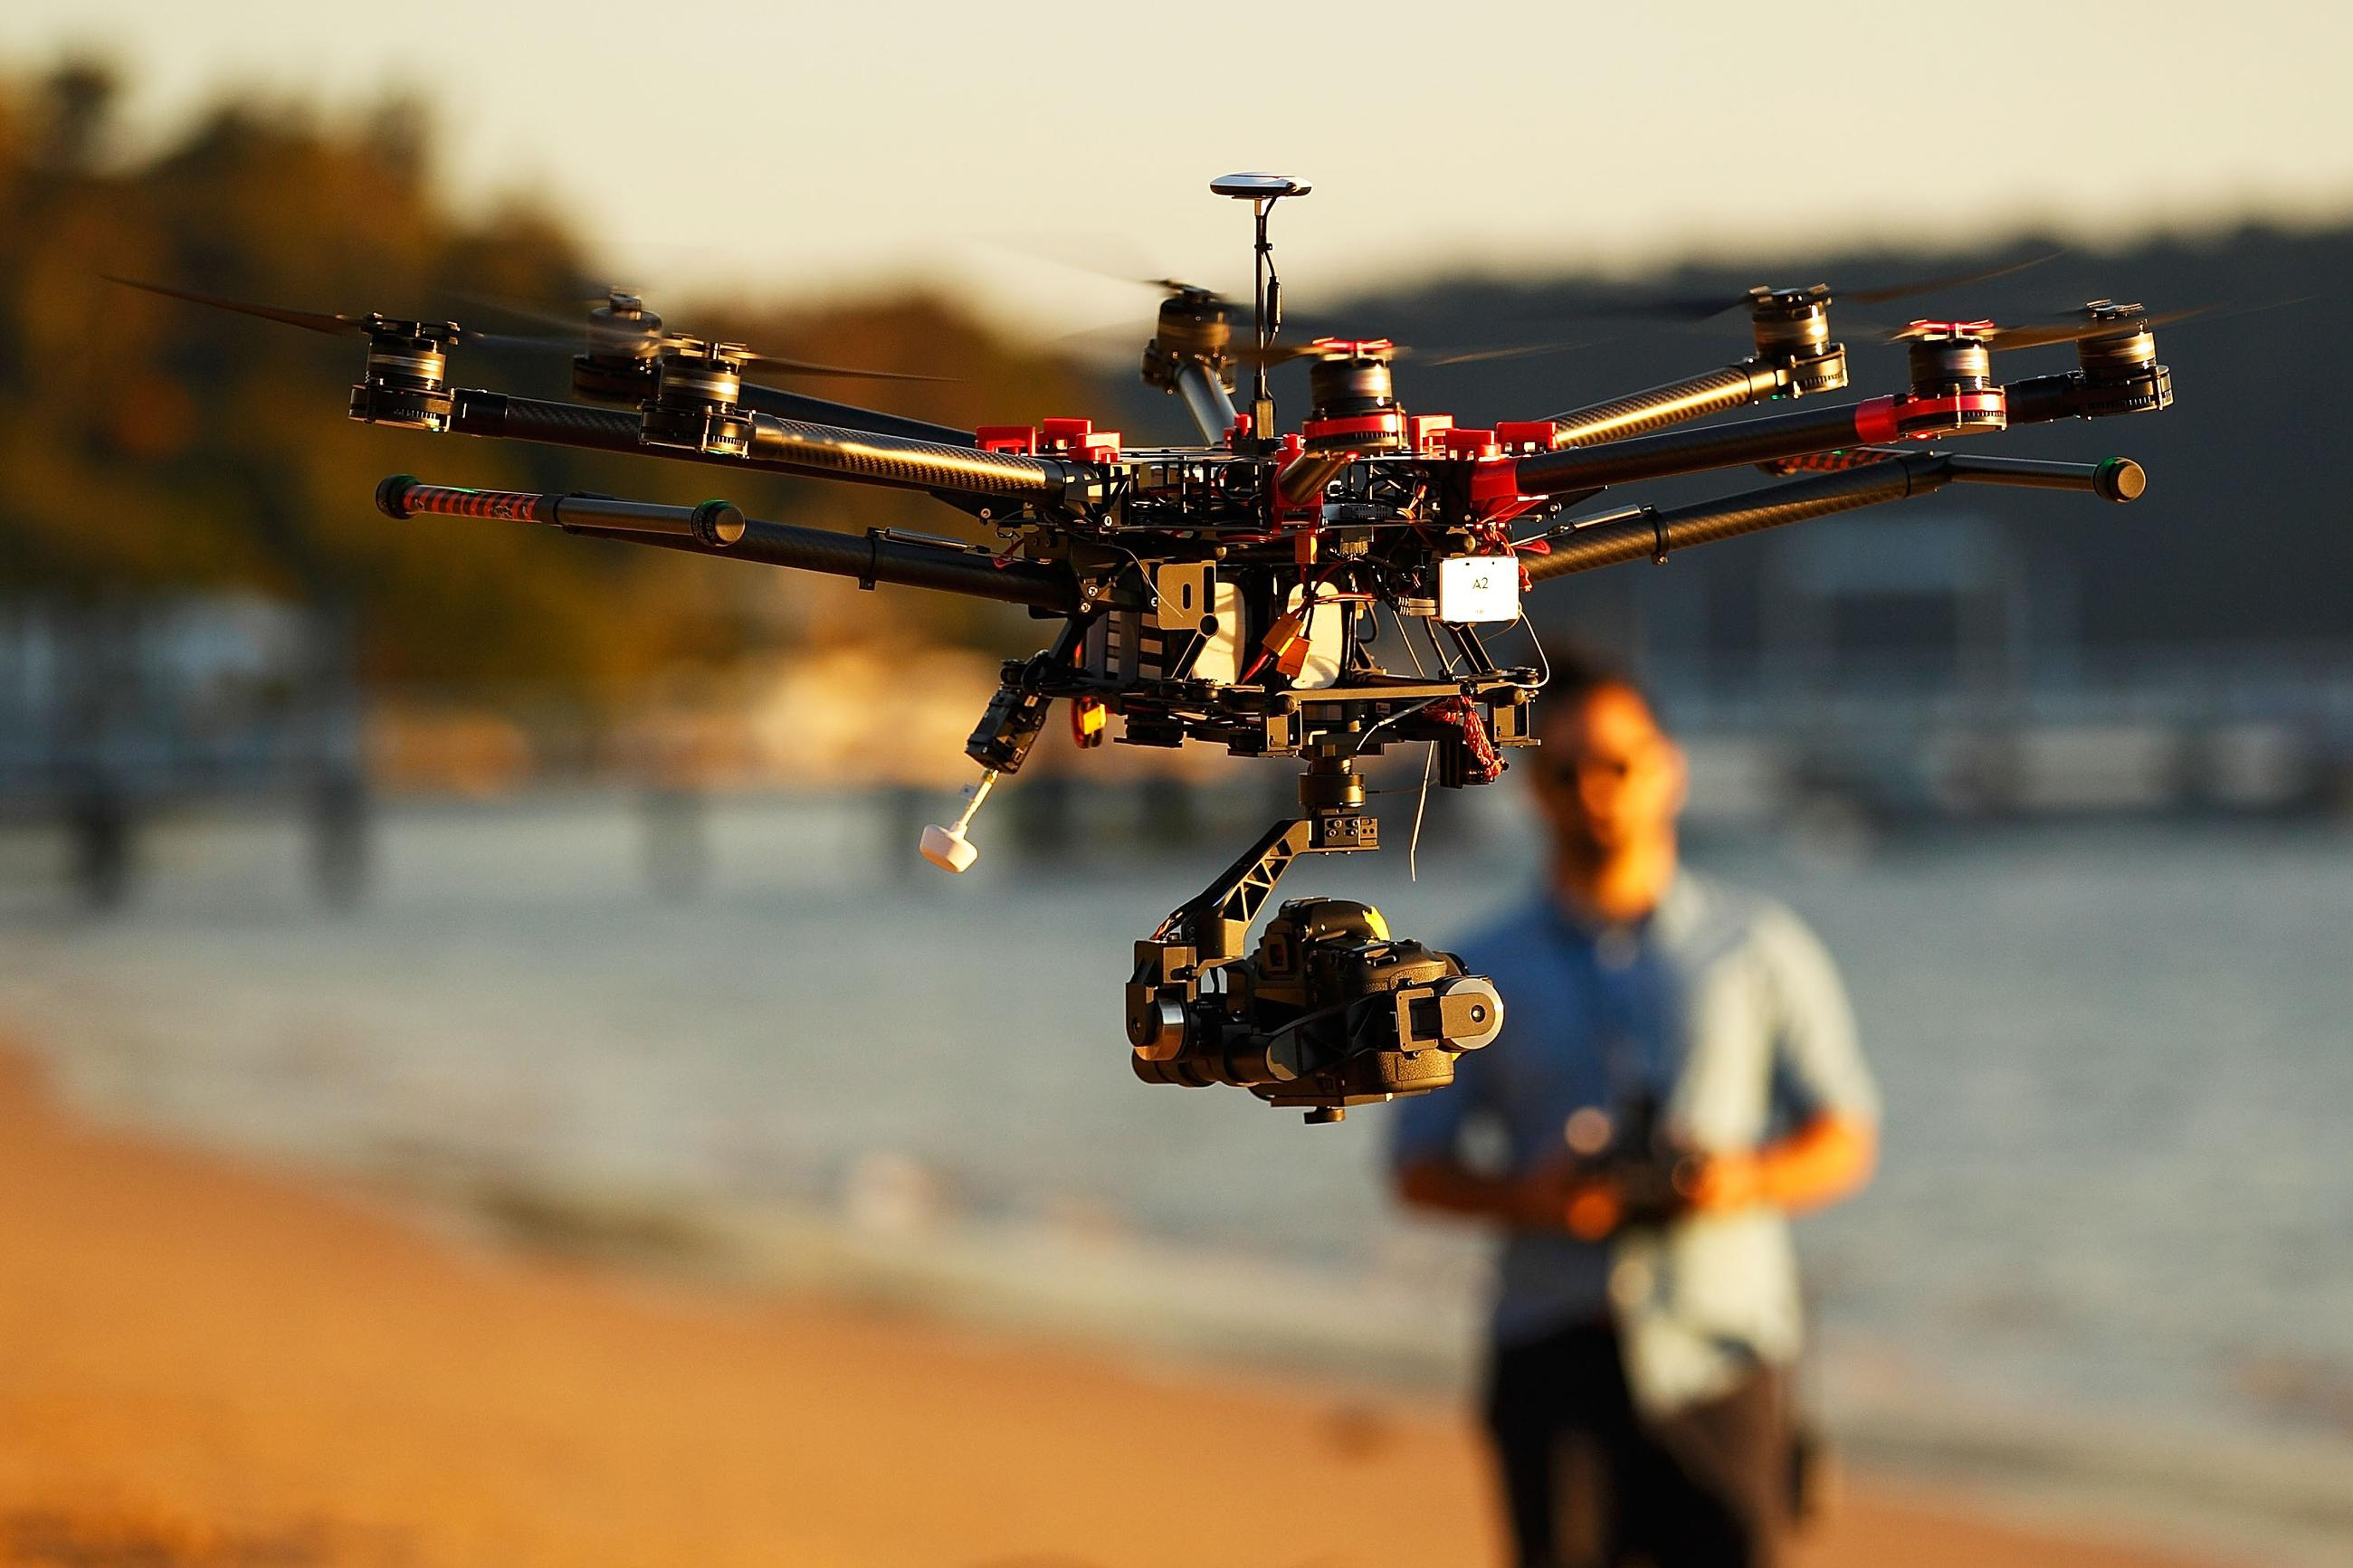 Few Privacy Limitations Exist on How Police Use Drones